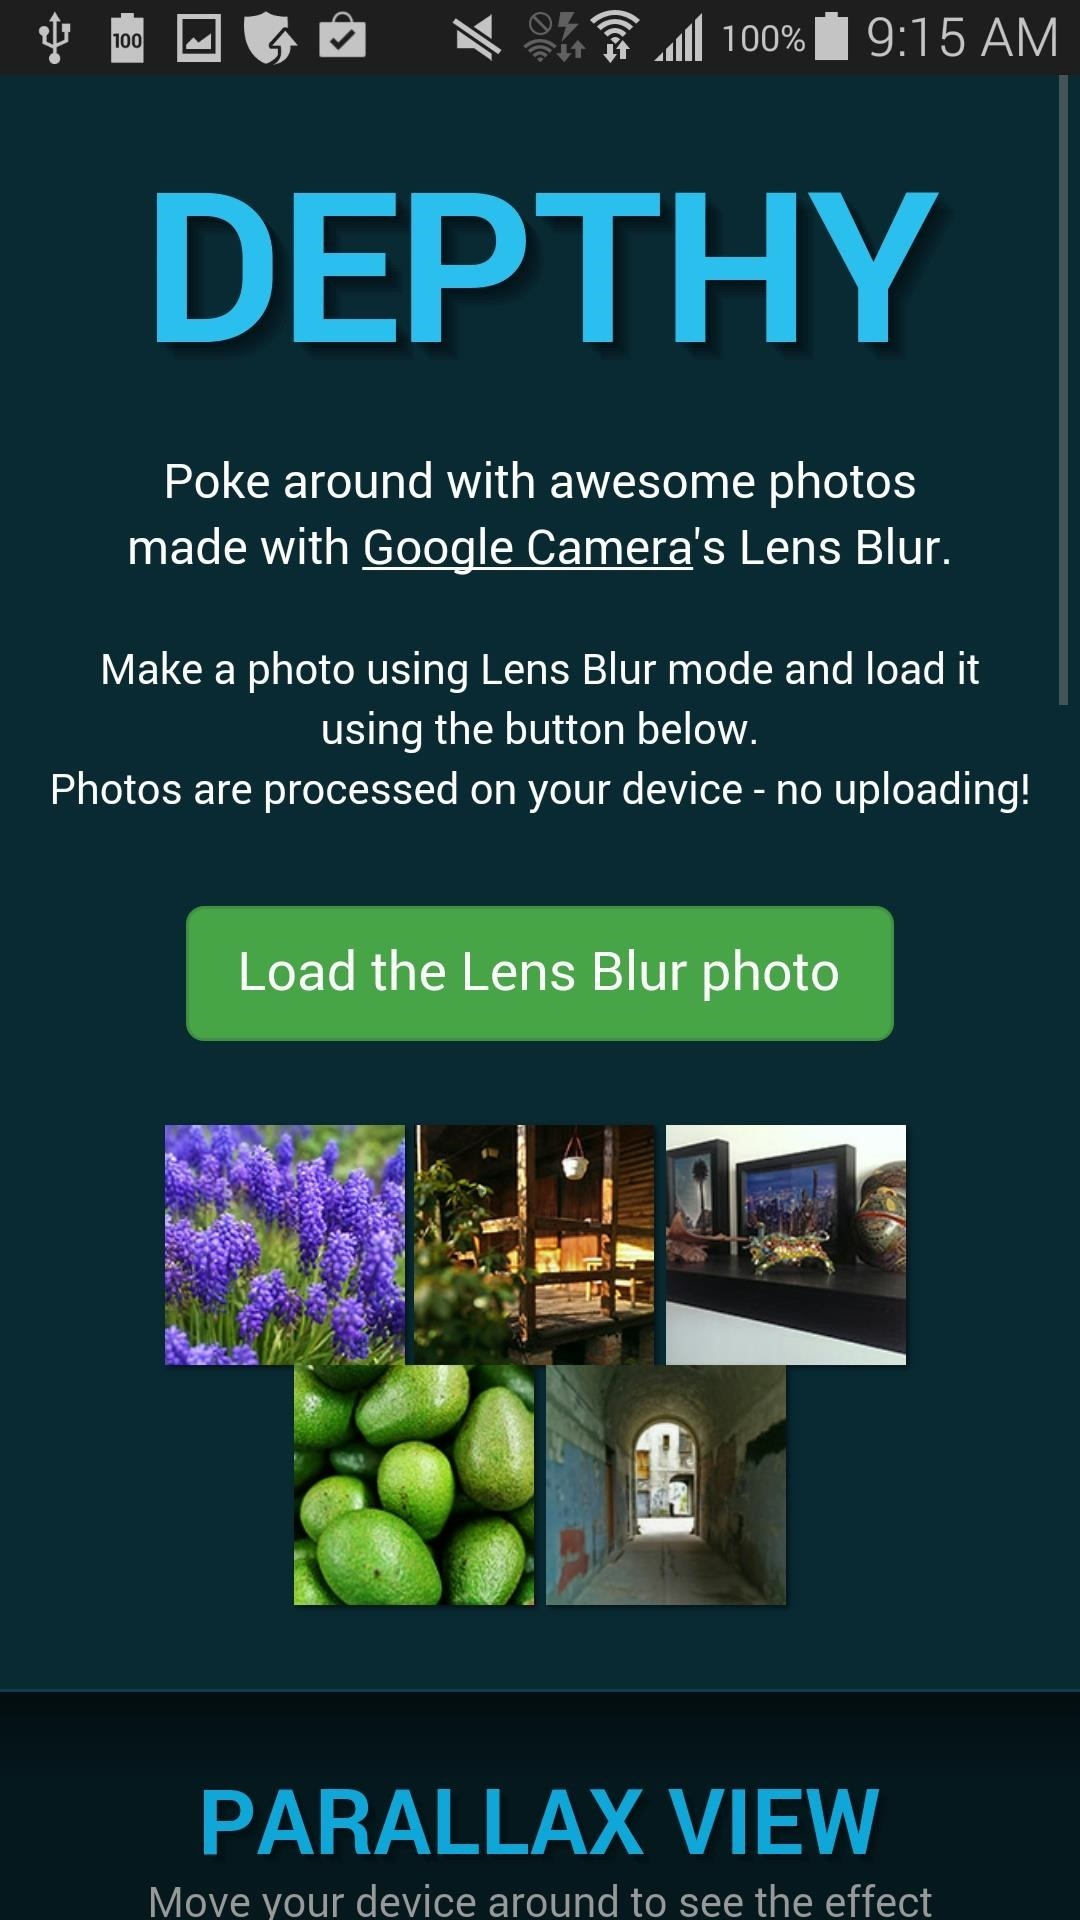 How to Turn Your Google Camera Lens Blur Photos into Parallax Images